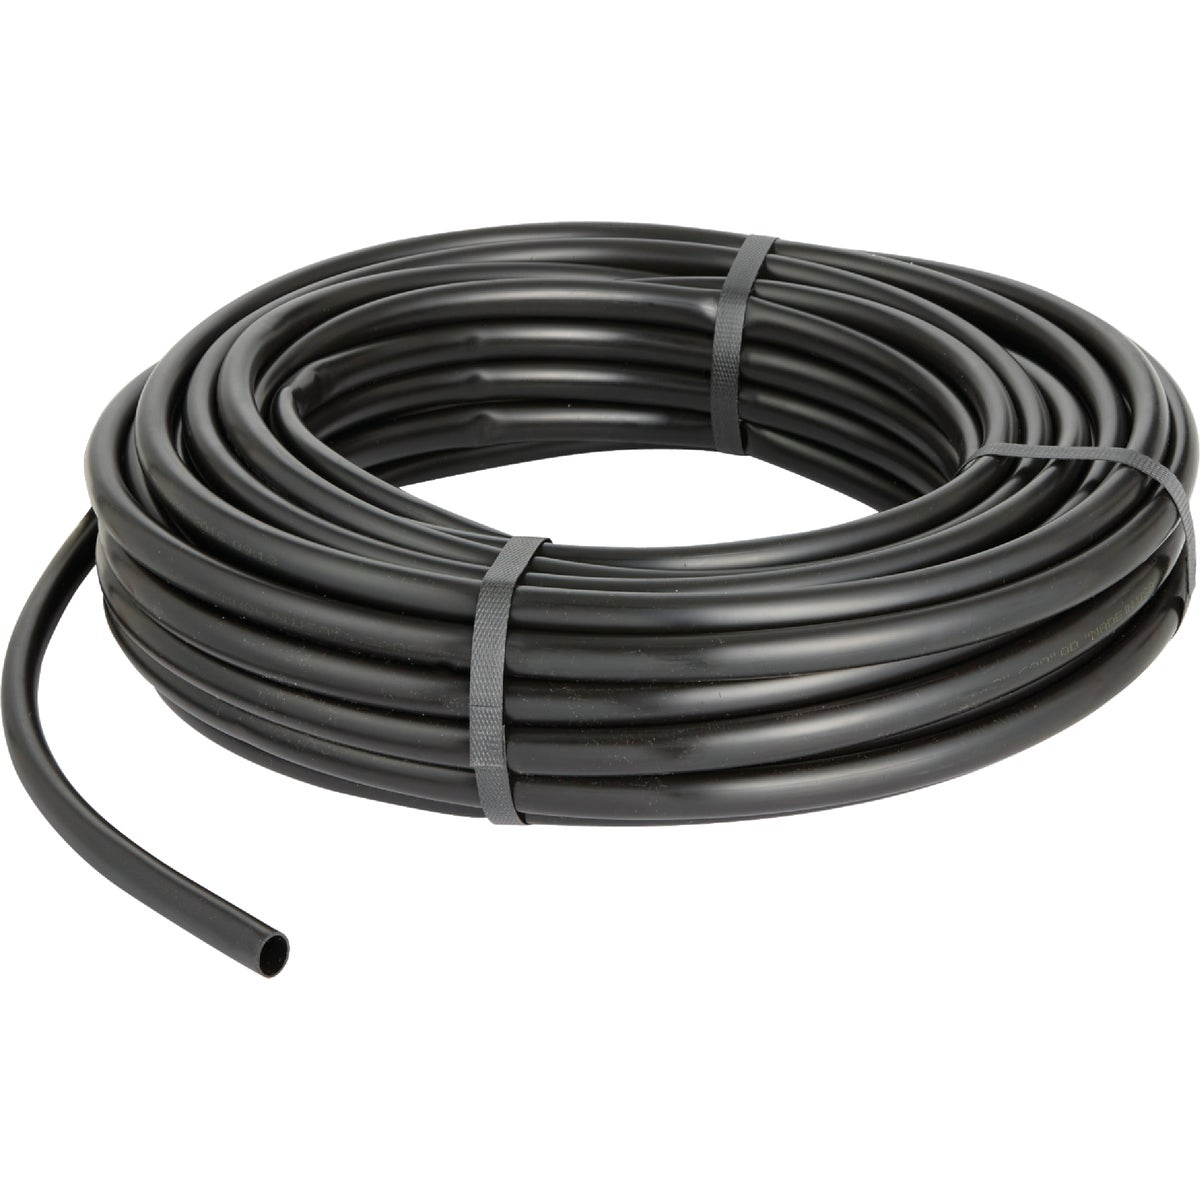 "1/2""X100'DRP WATRNG HOSE - 052010P by Raindrip Inc"